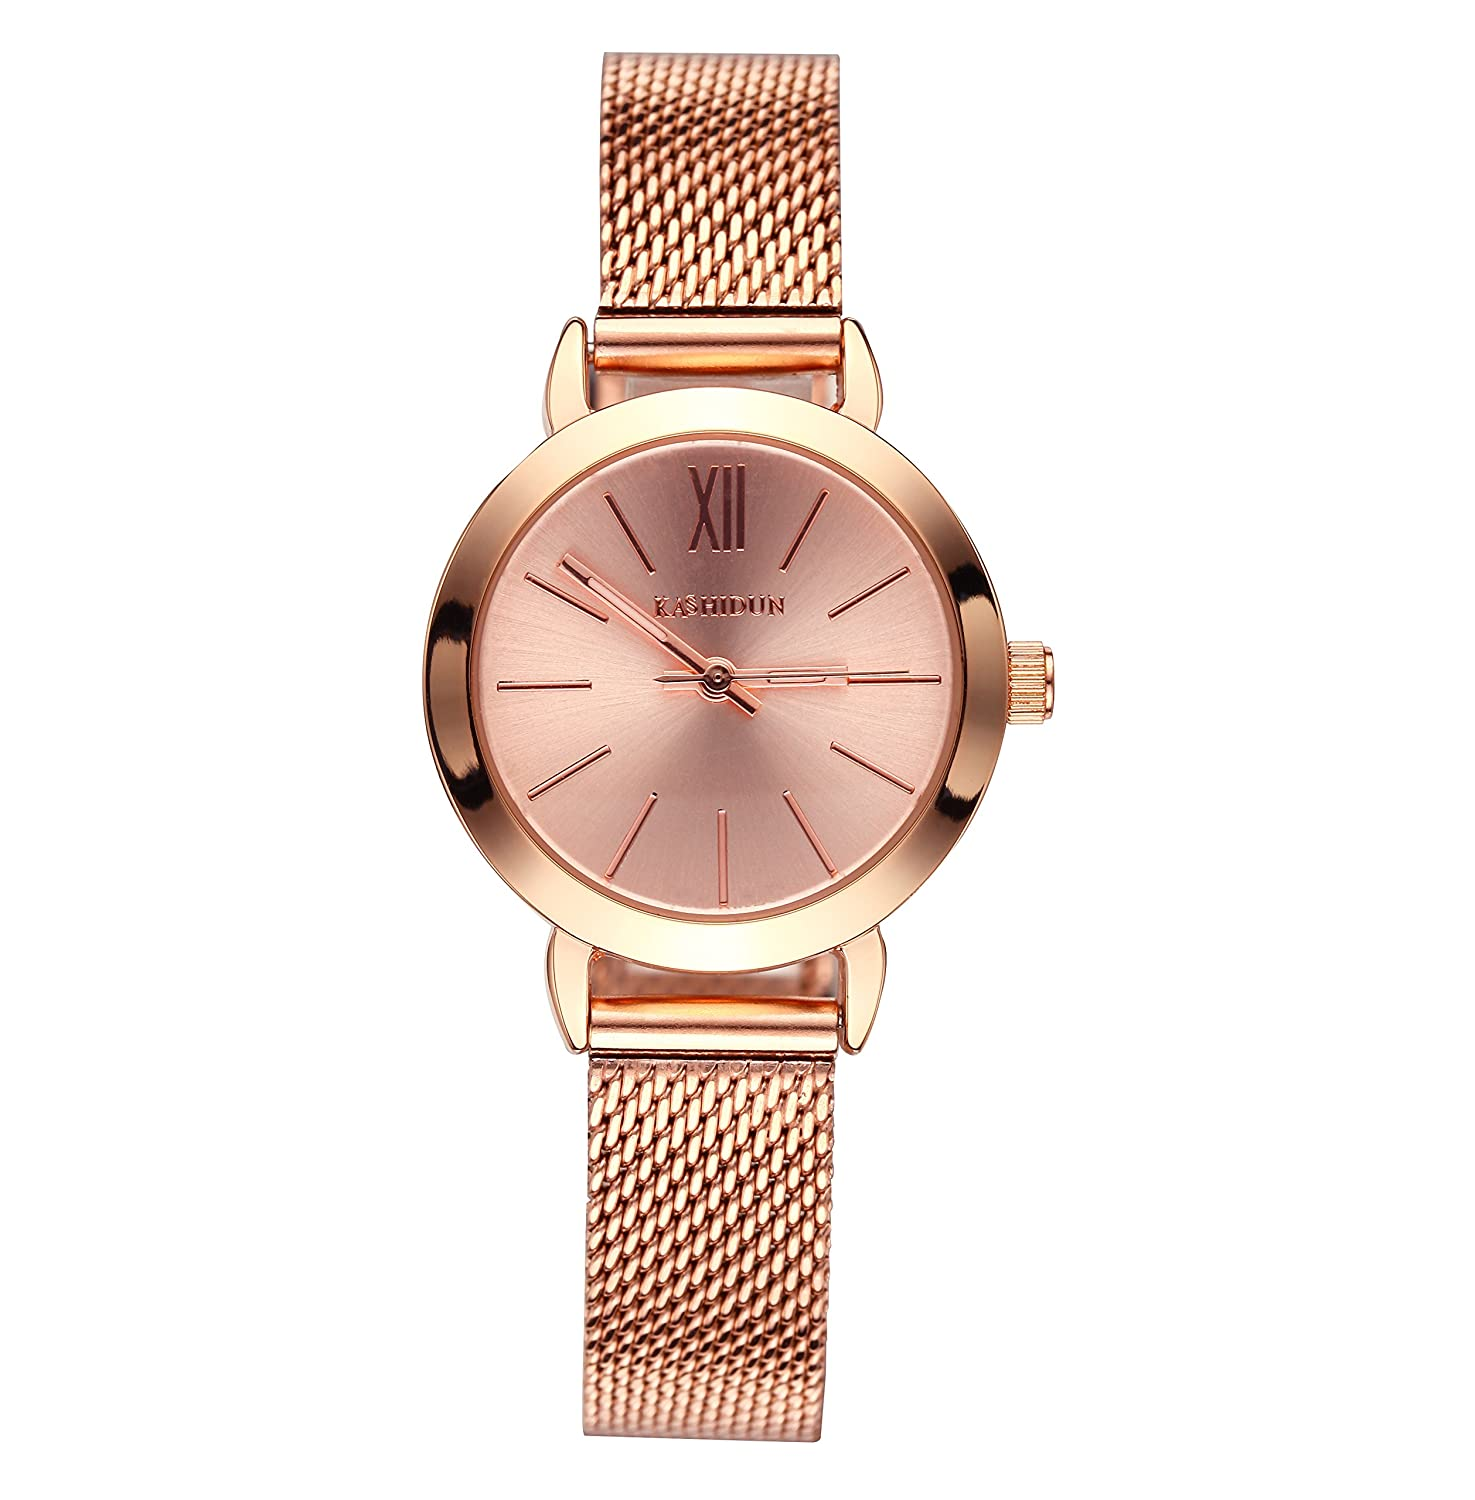 Electronic Watches Womens Fashion Female Clocks Women Luxury Quartz Watch Rose Gold Stainless Steel Dress Watches Quartz Carefully Selected Materials Watches